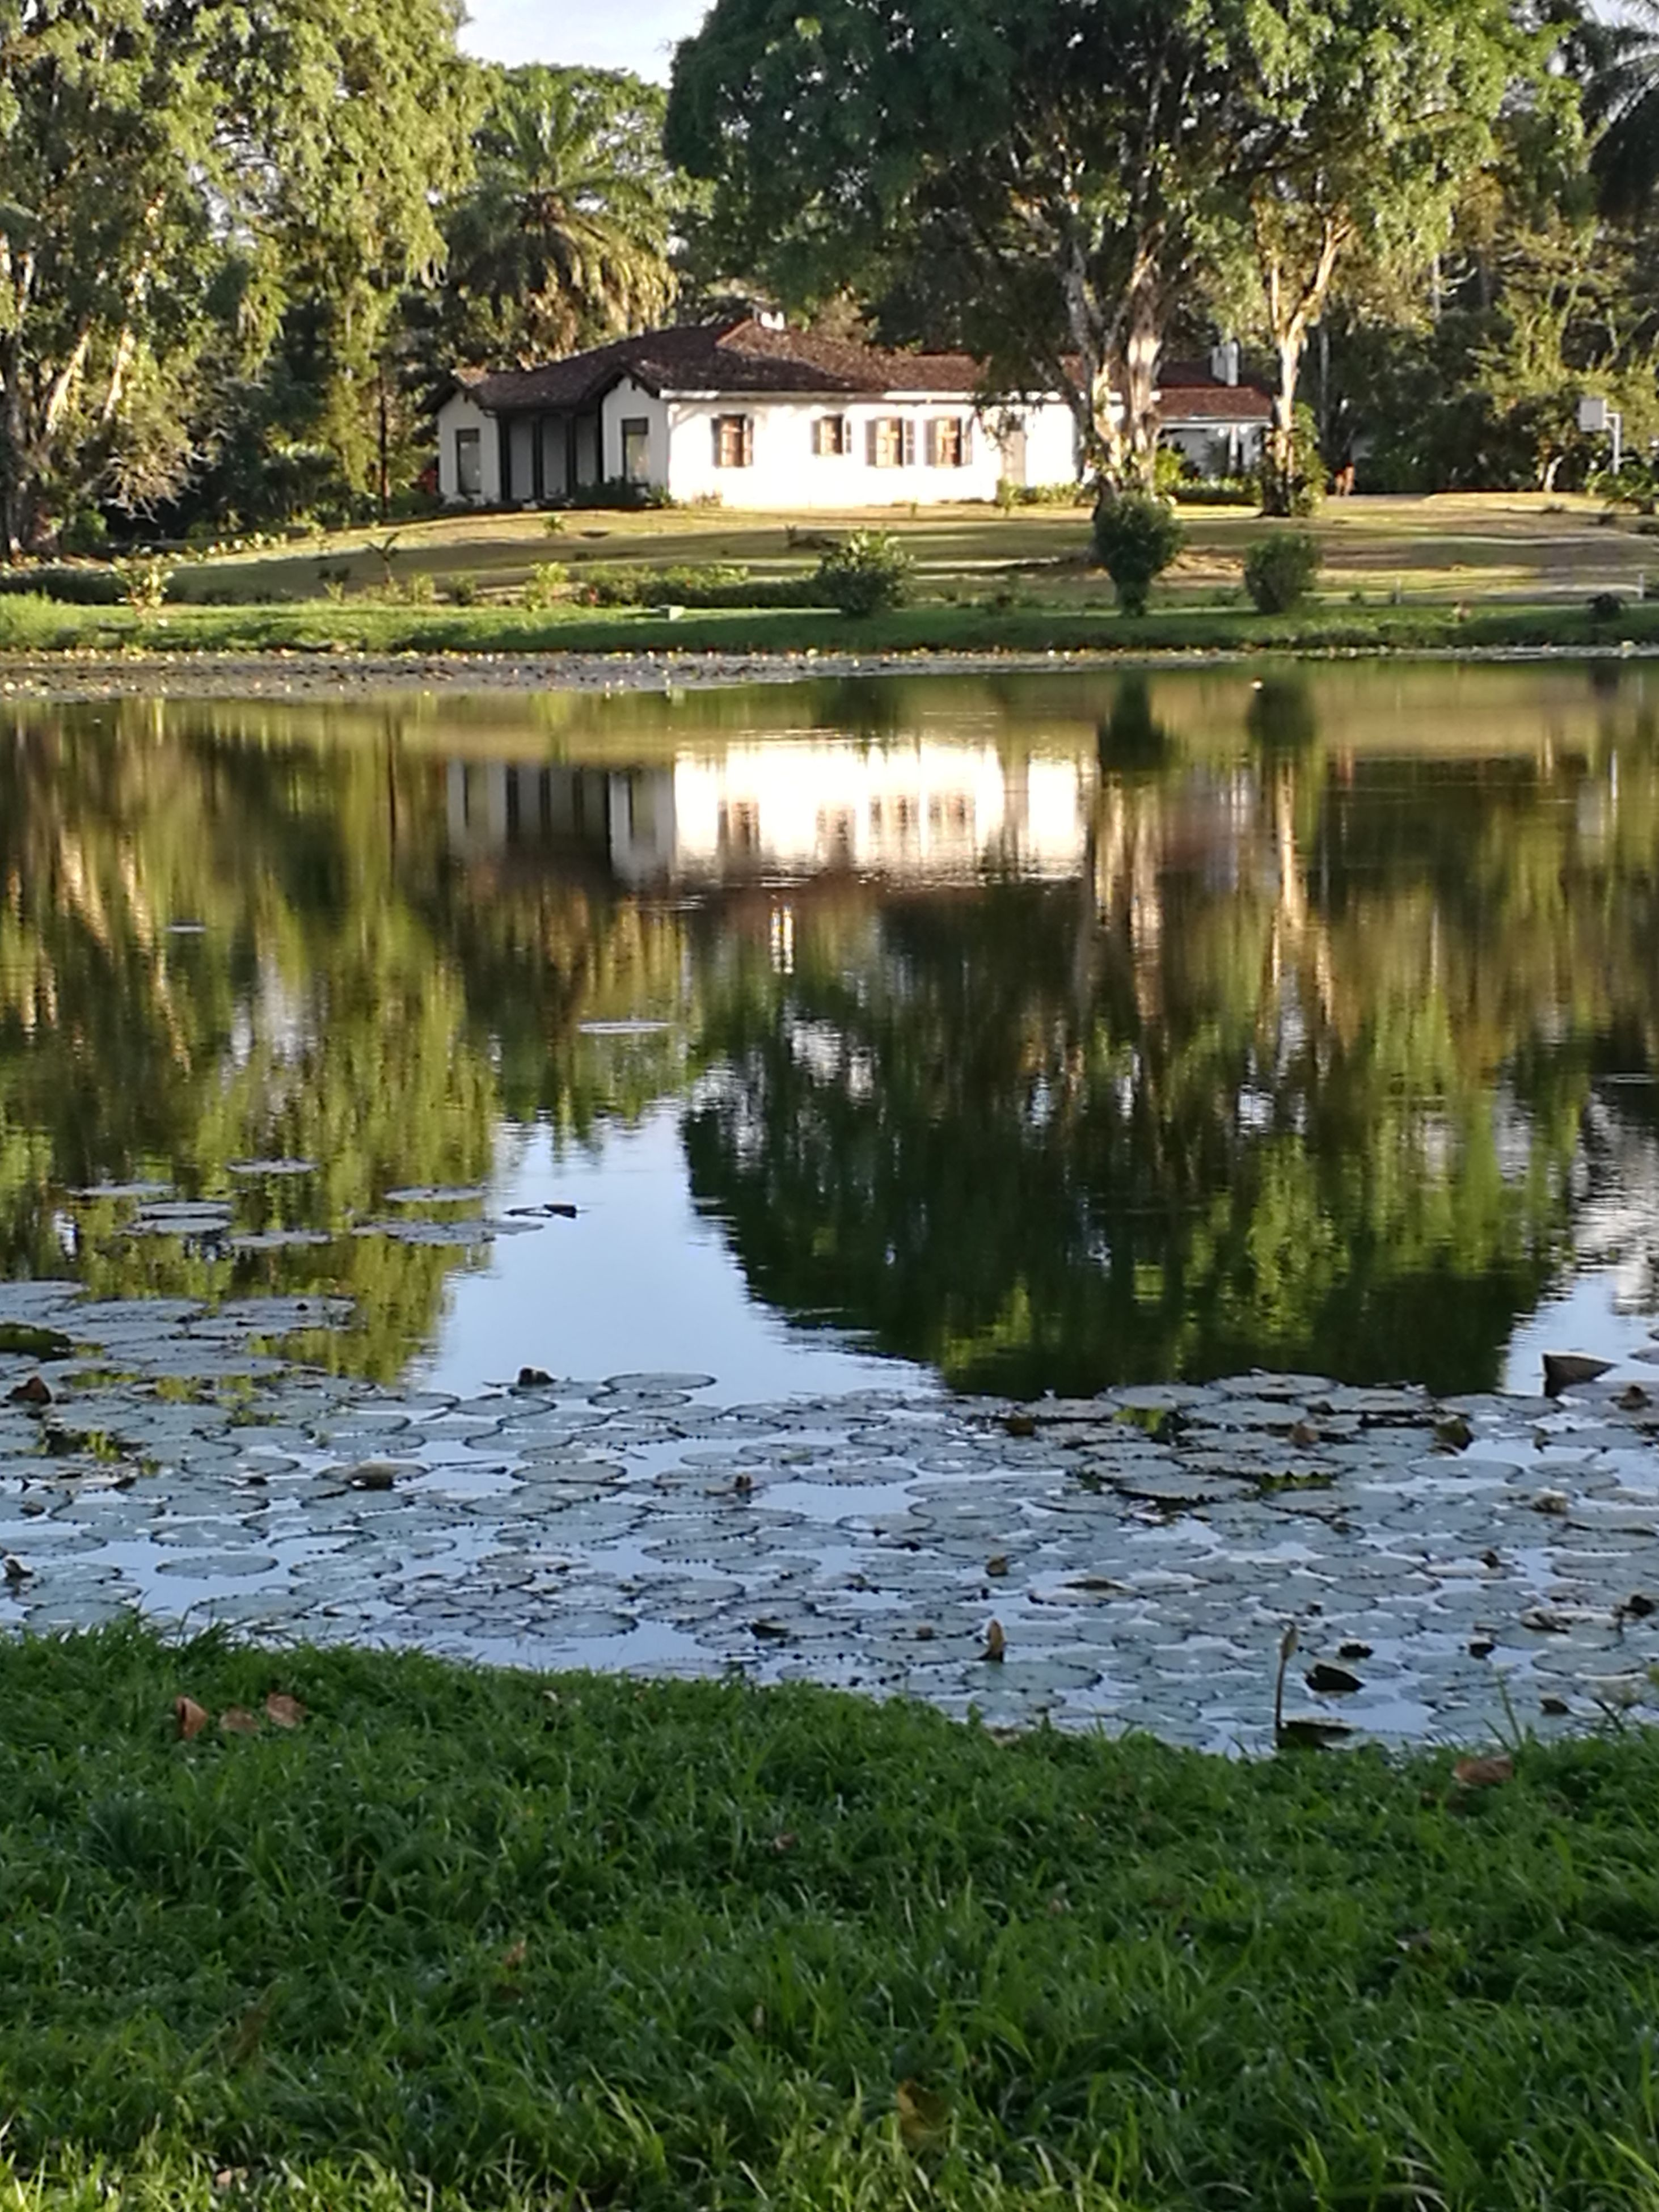 reflection, water, lake, nature, tree, outdoors, no people, animal themes, grass, day, reflection lake, floating on water, animals in the wild, beauty in nature